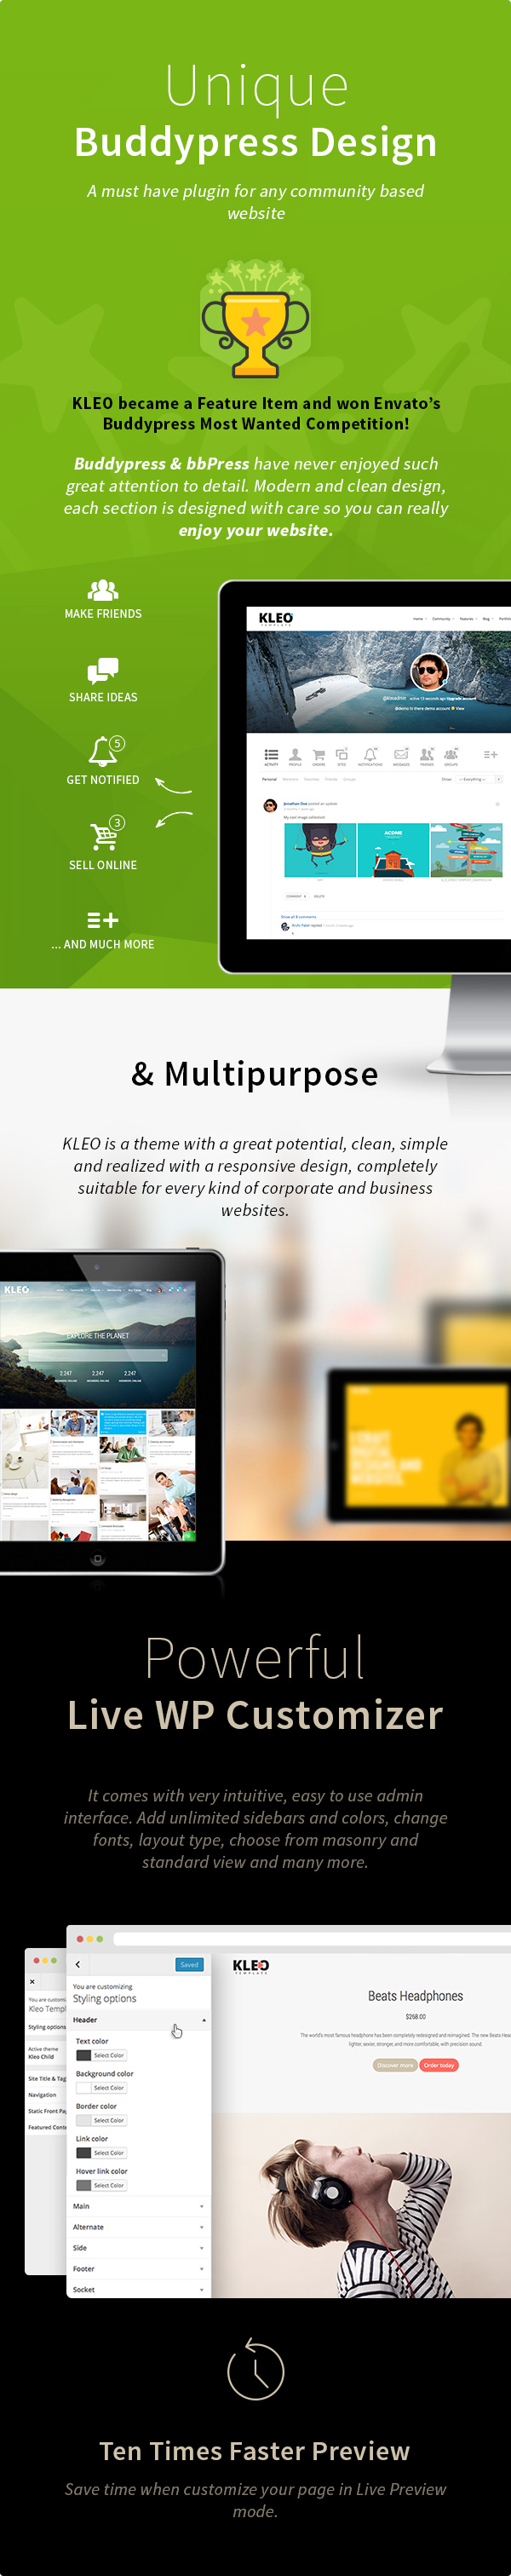 KLEO - Pro Community Focused, Multi-Purpose BuddyPress Theme - 10